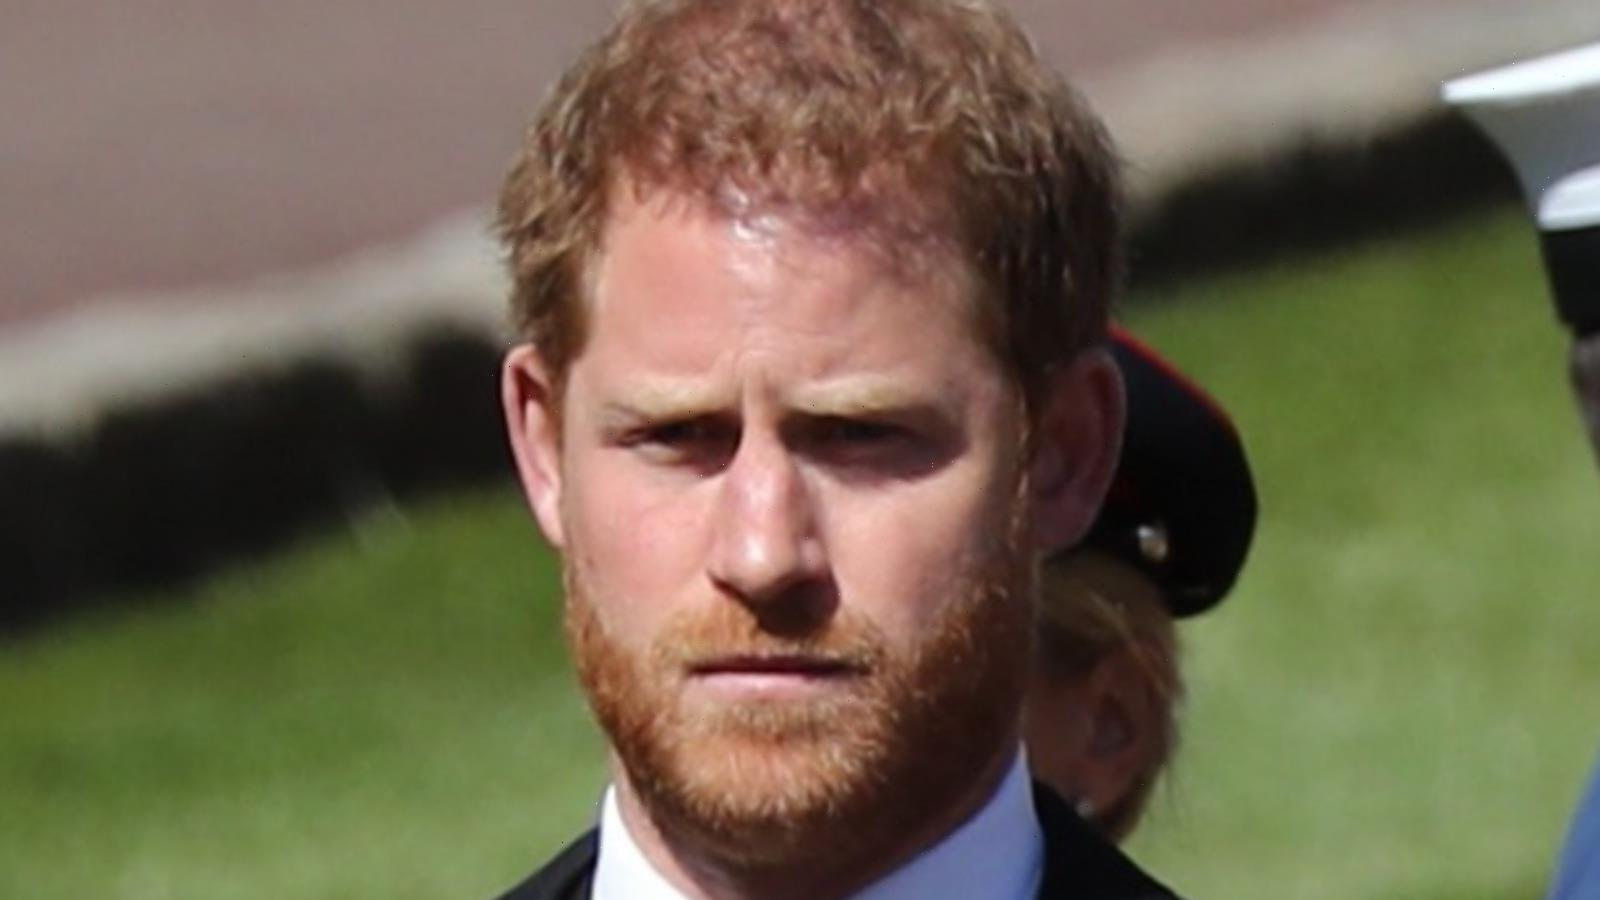 Experts Reveal The One Thing Harry Did At Philip's Funeral Differently Than His Family